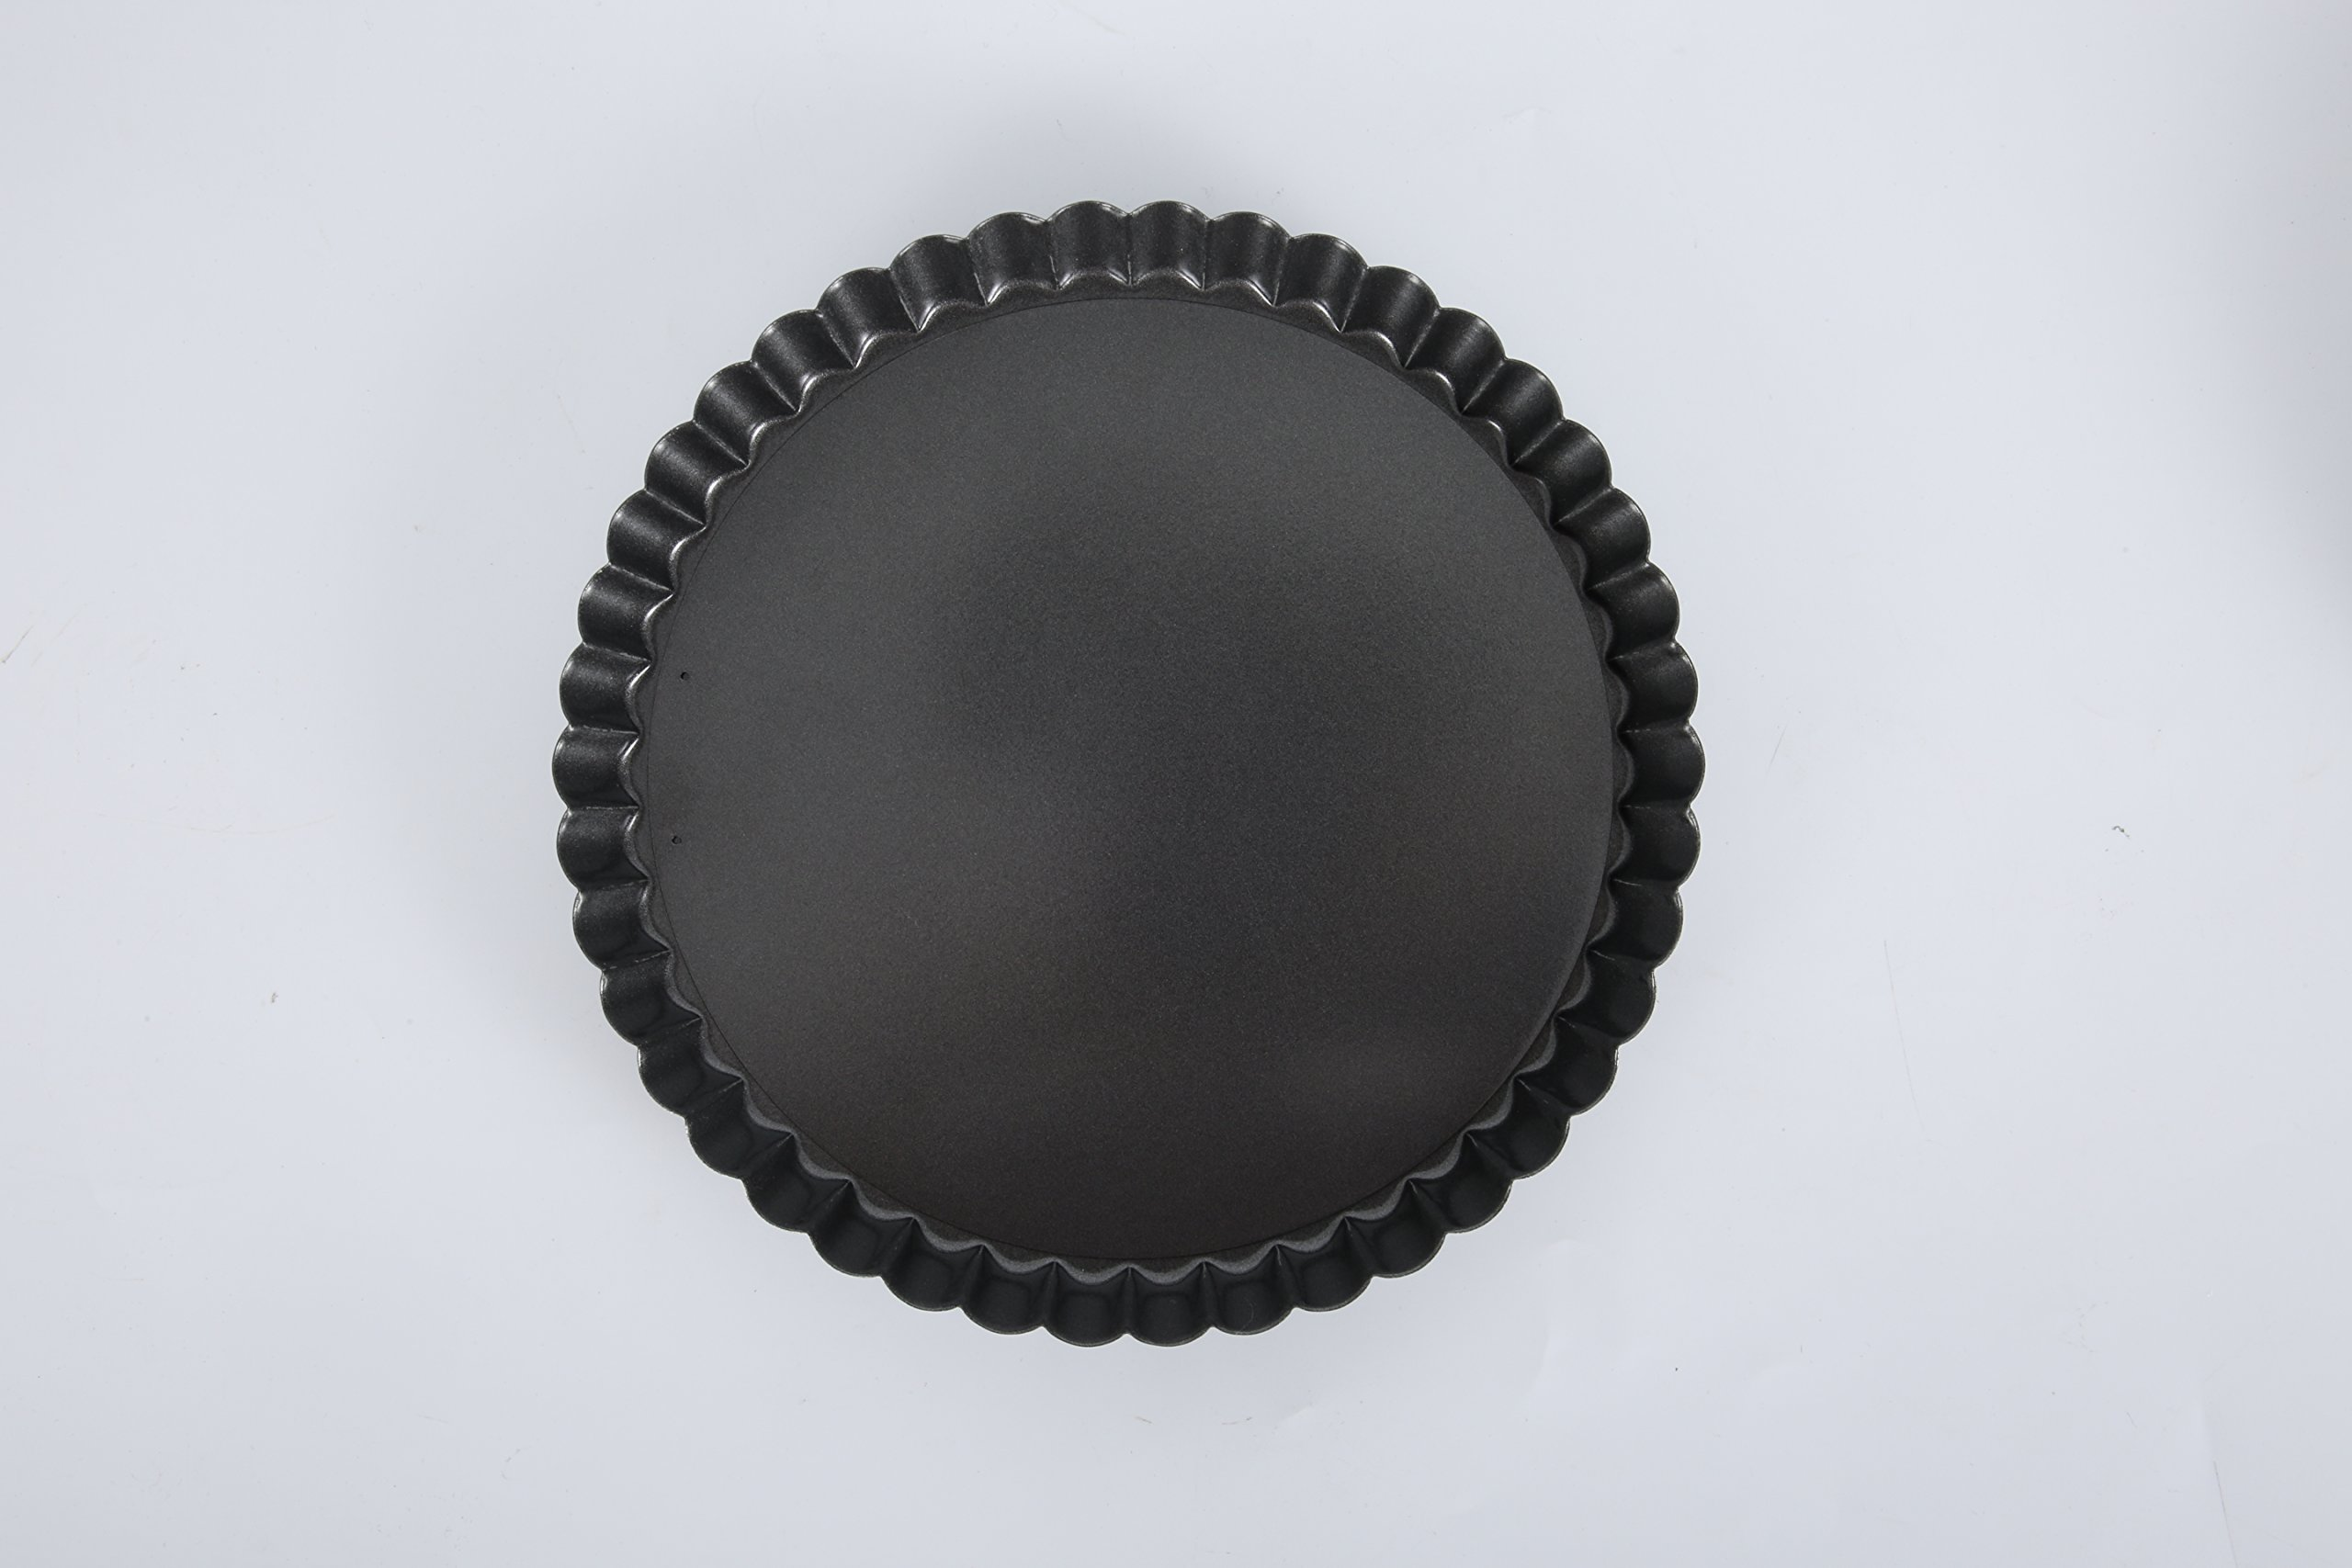 Non-Stick Removable Loose Bottom Quiche Tart Pan,Round Tart Quiche Pan with Removable Base,8-Inch by bingcheng (Image #3)